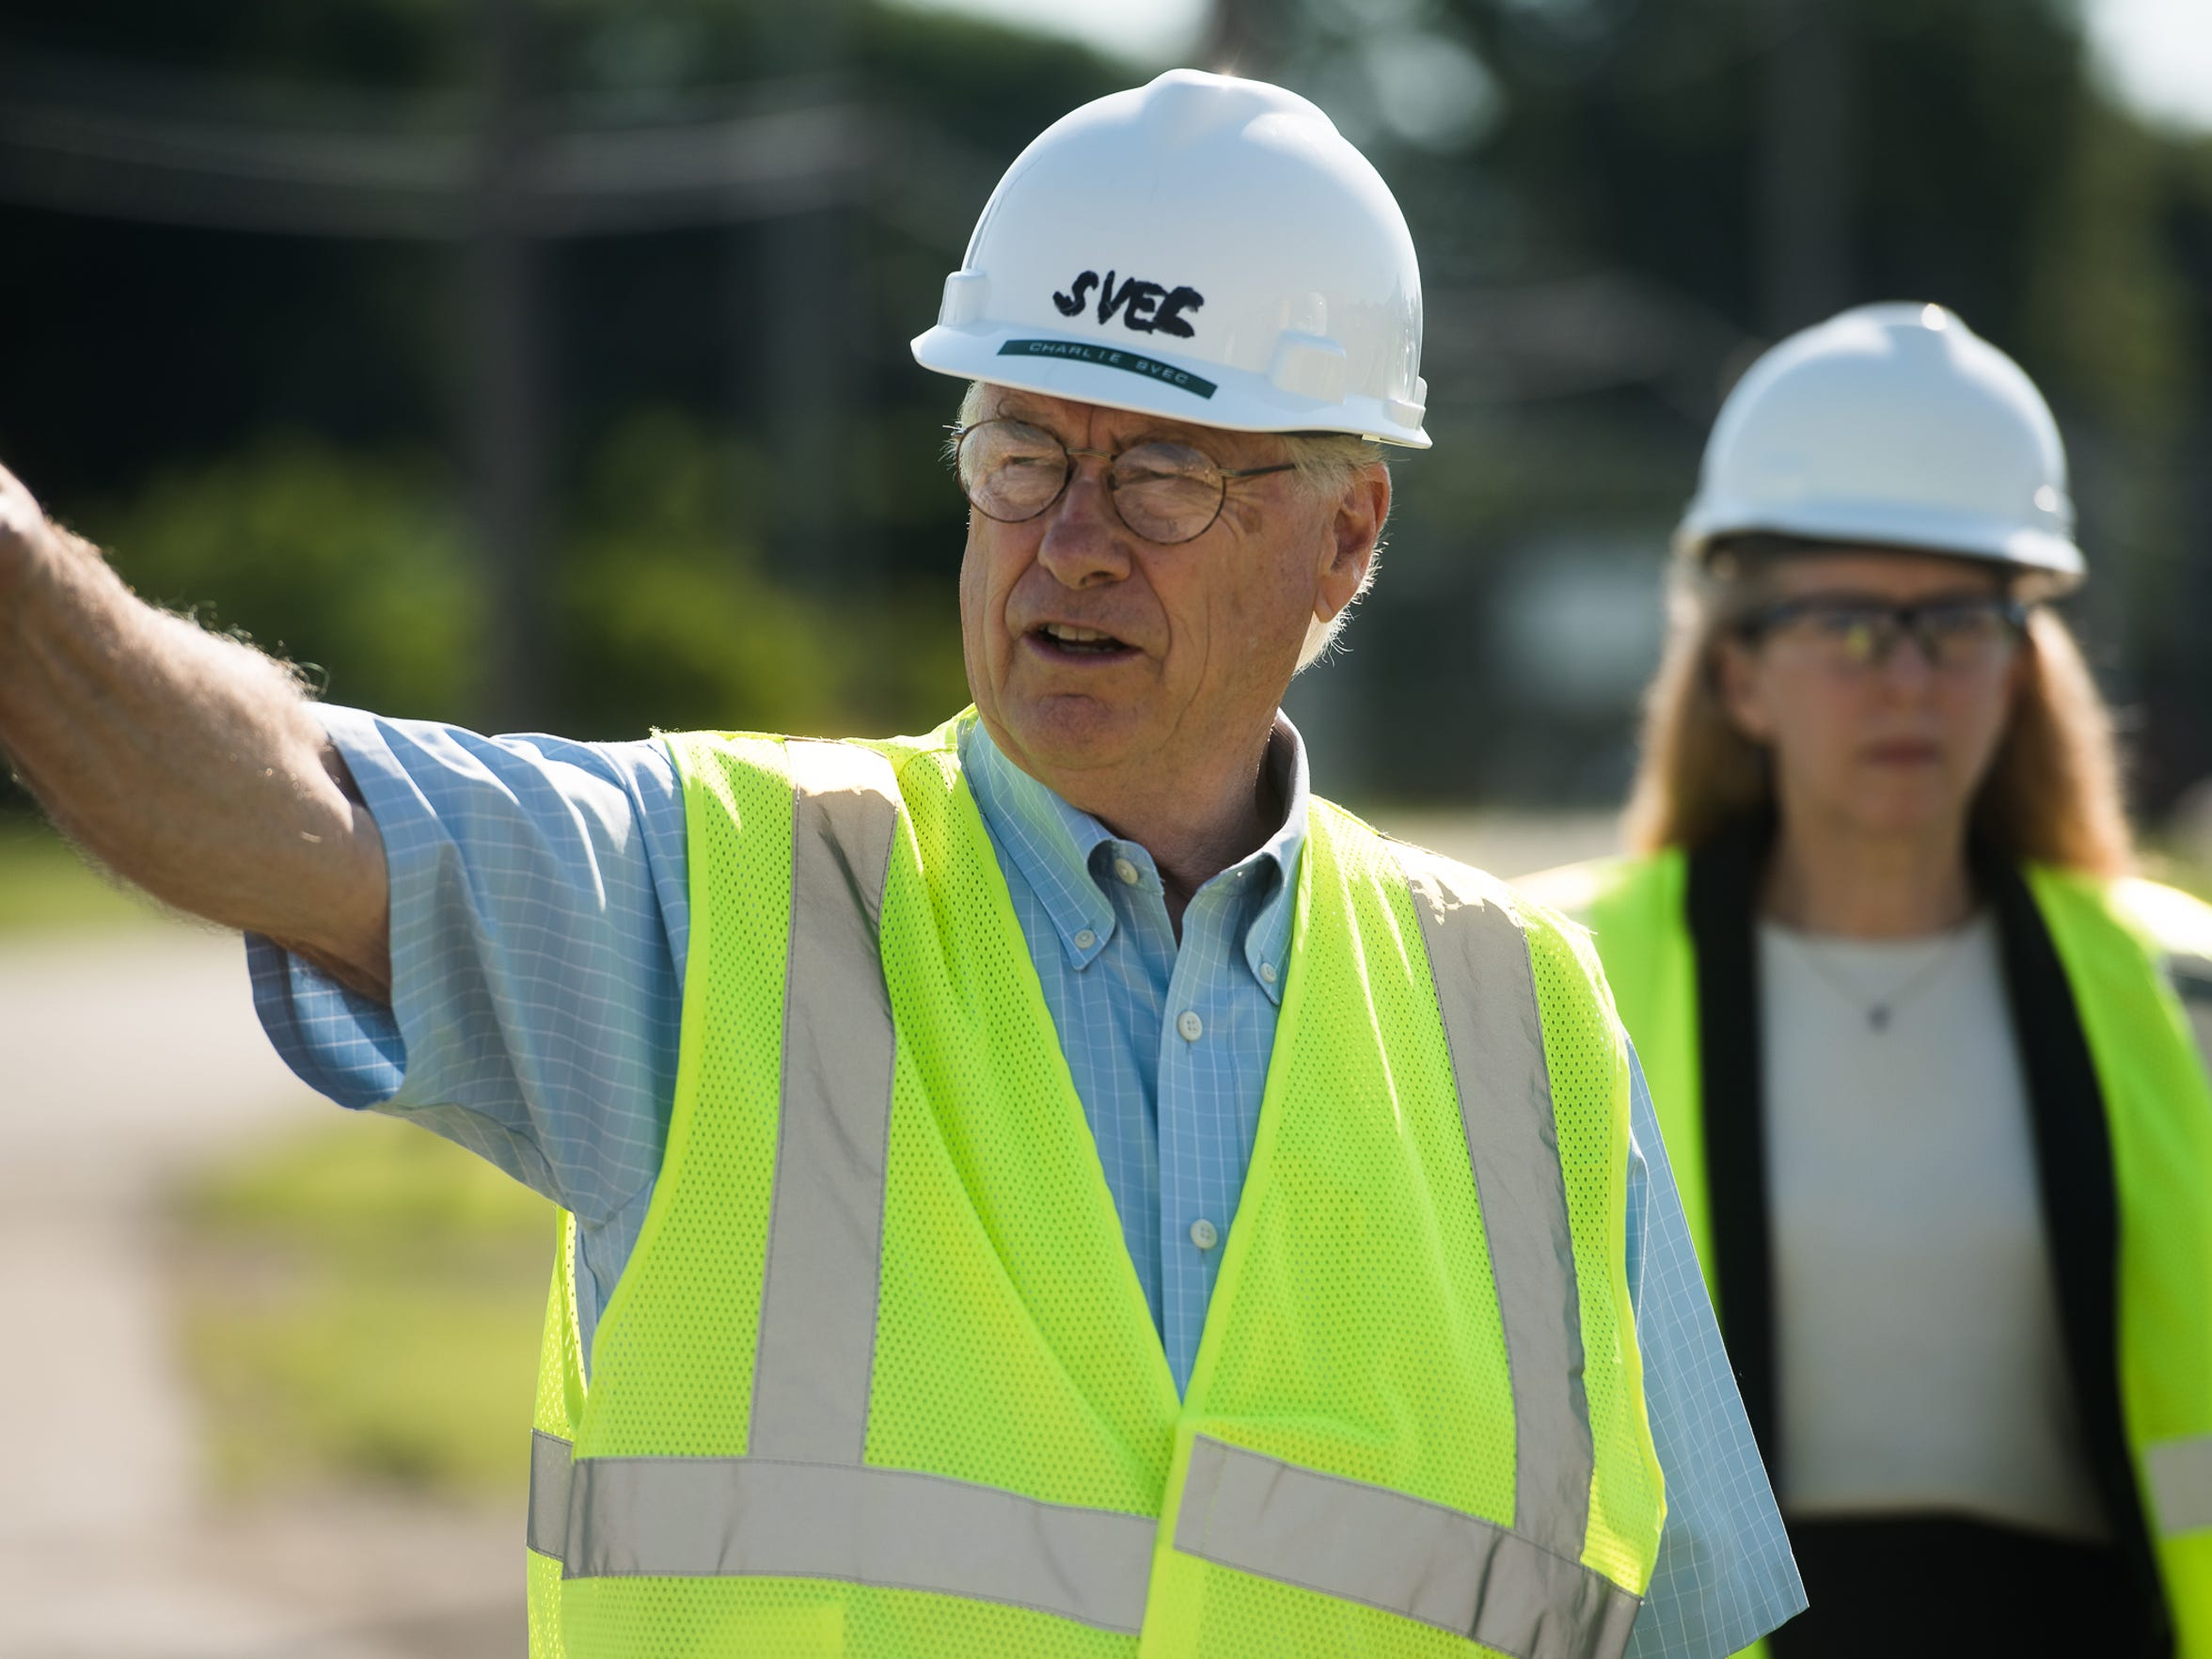 Miller Chemical and Fertilizer President Charles Svec explains new additions to the Miller Chemical Company plant on Radio Road in Conewago Township on Tuesday. The fire that destroyed a large section of the factory happened June 8, 2015.